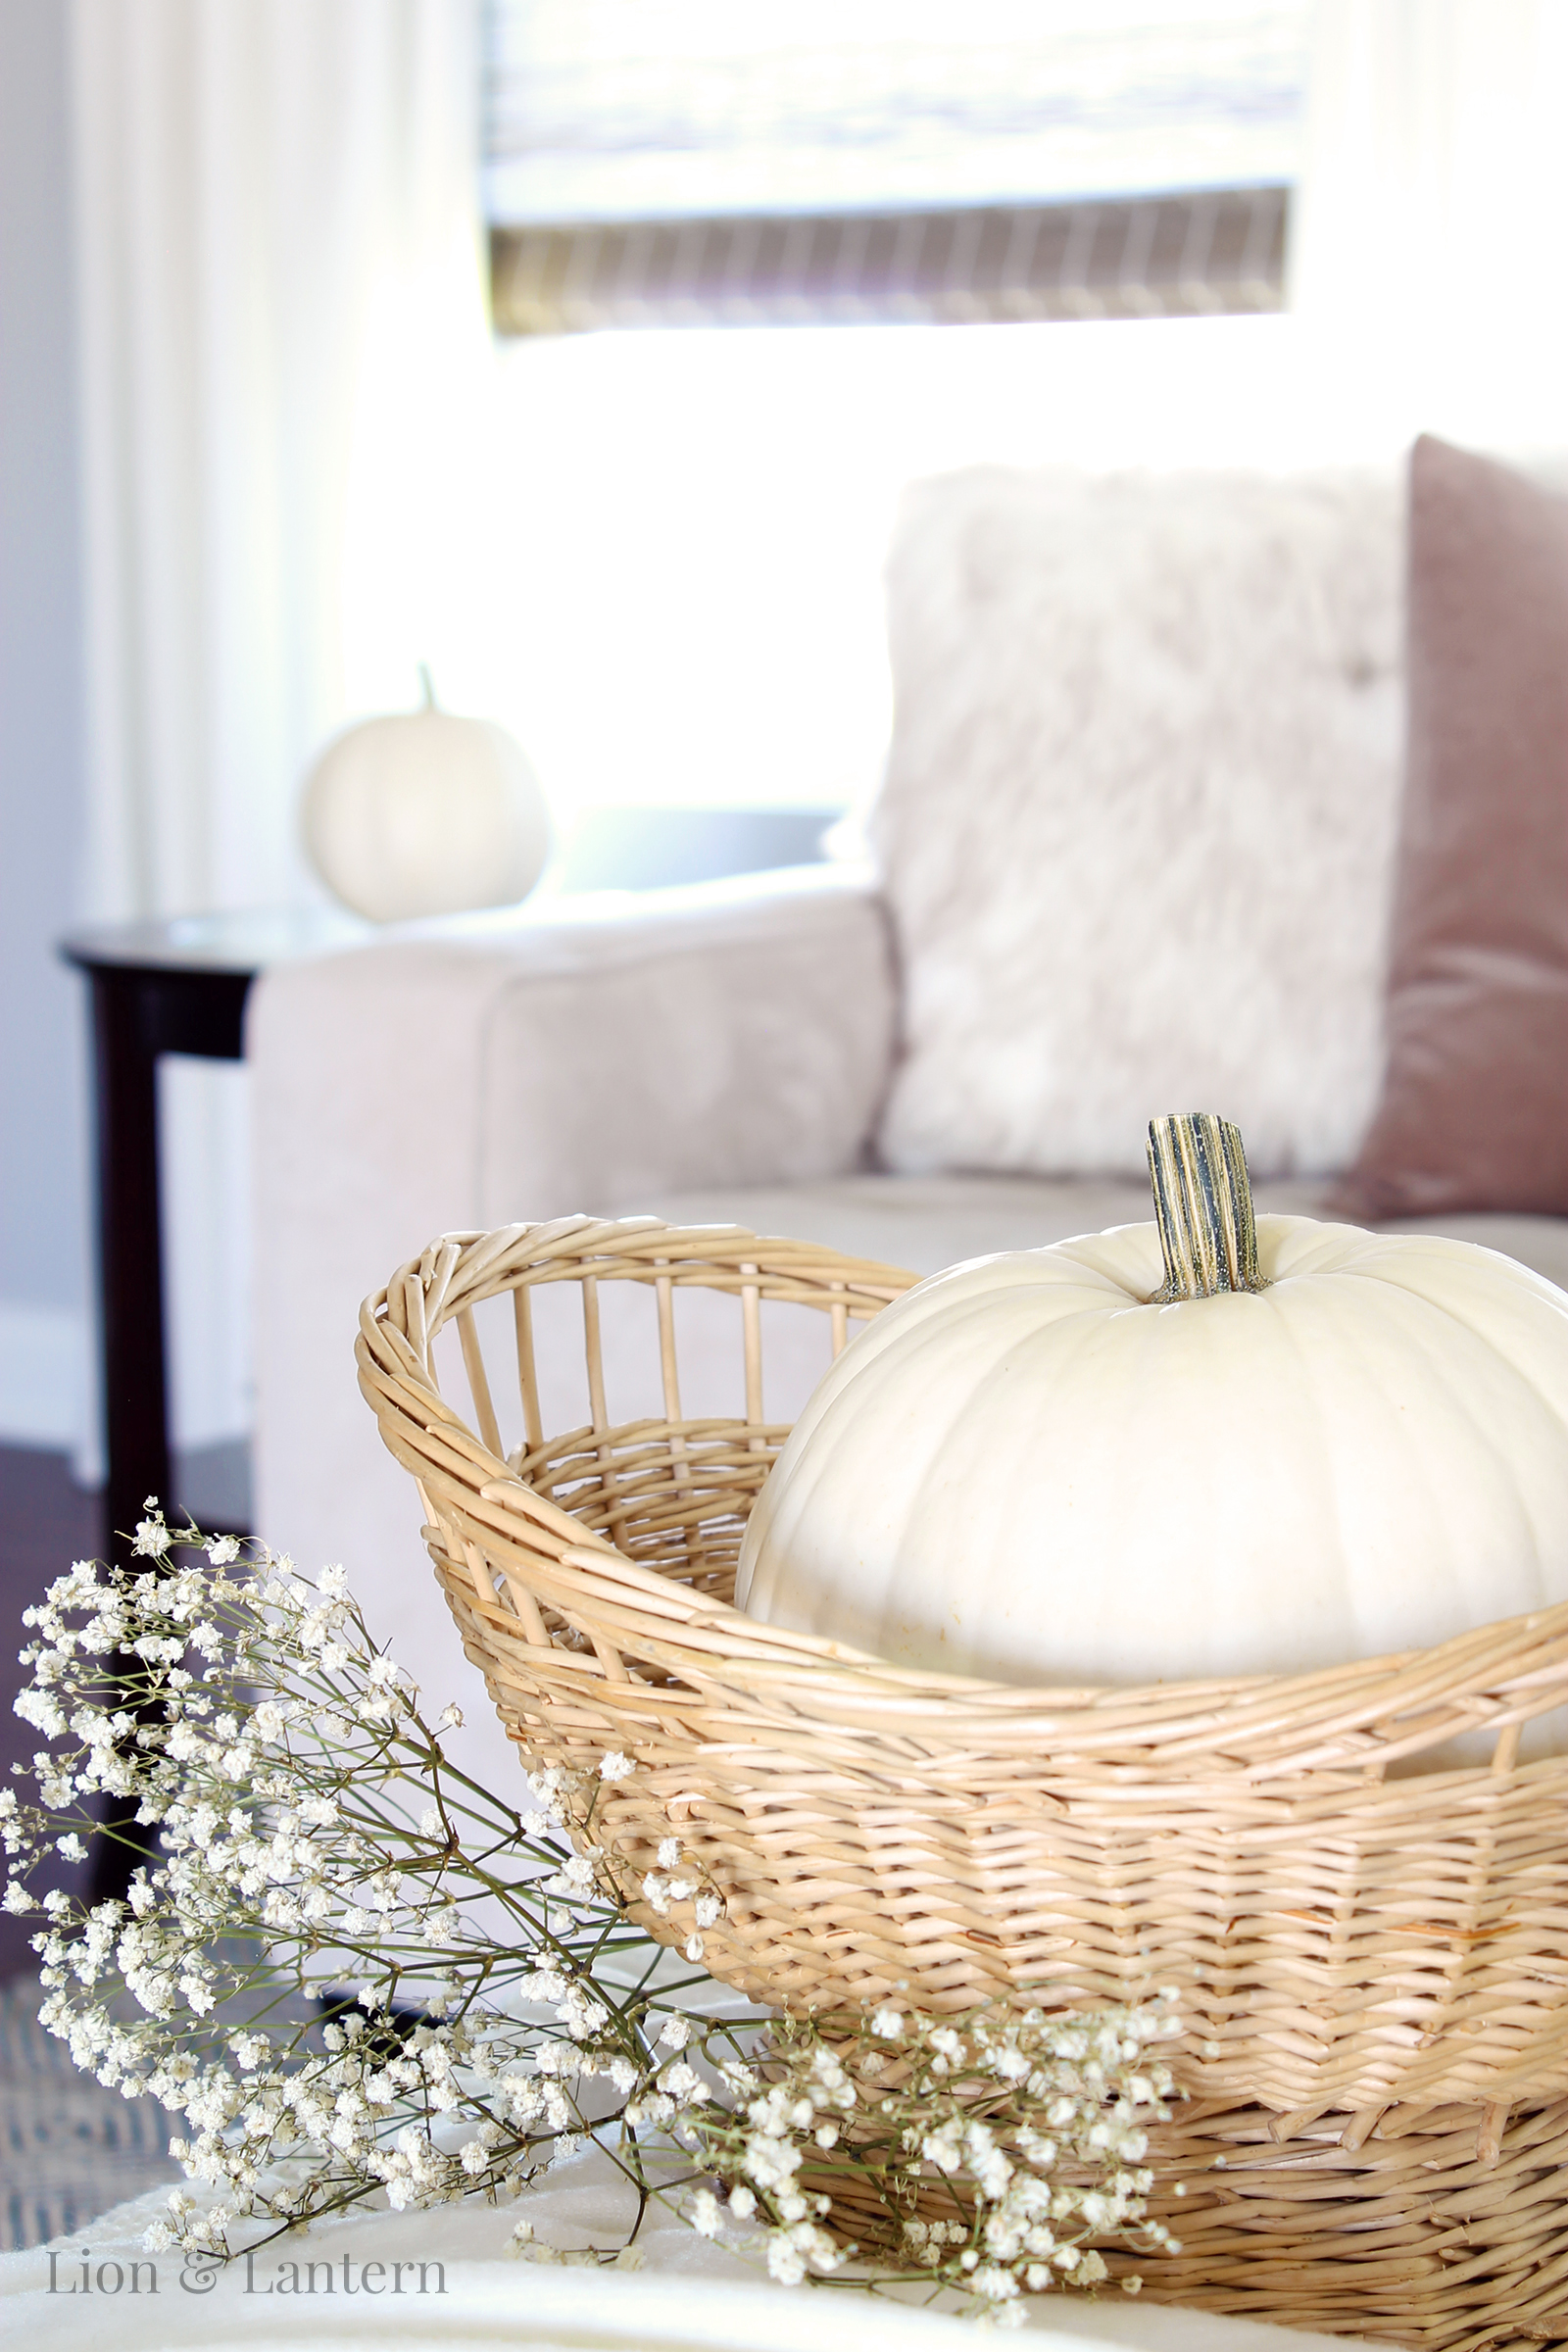 Neutral Fall Living Room at LionAndLantern.com. Autumn decor, fall decor, white pumpkins, baskets, throws, texture, shelf decor